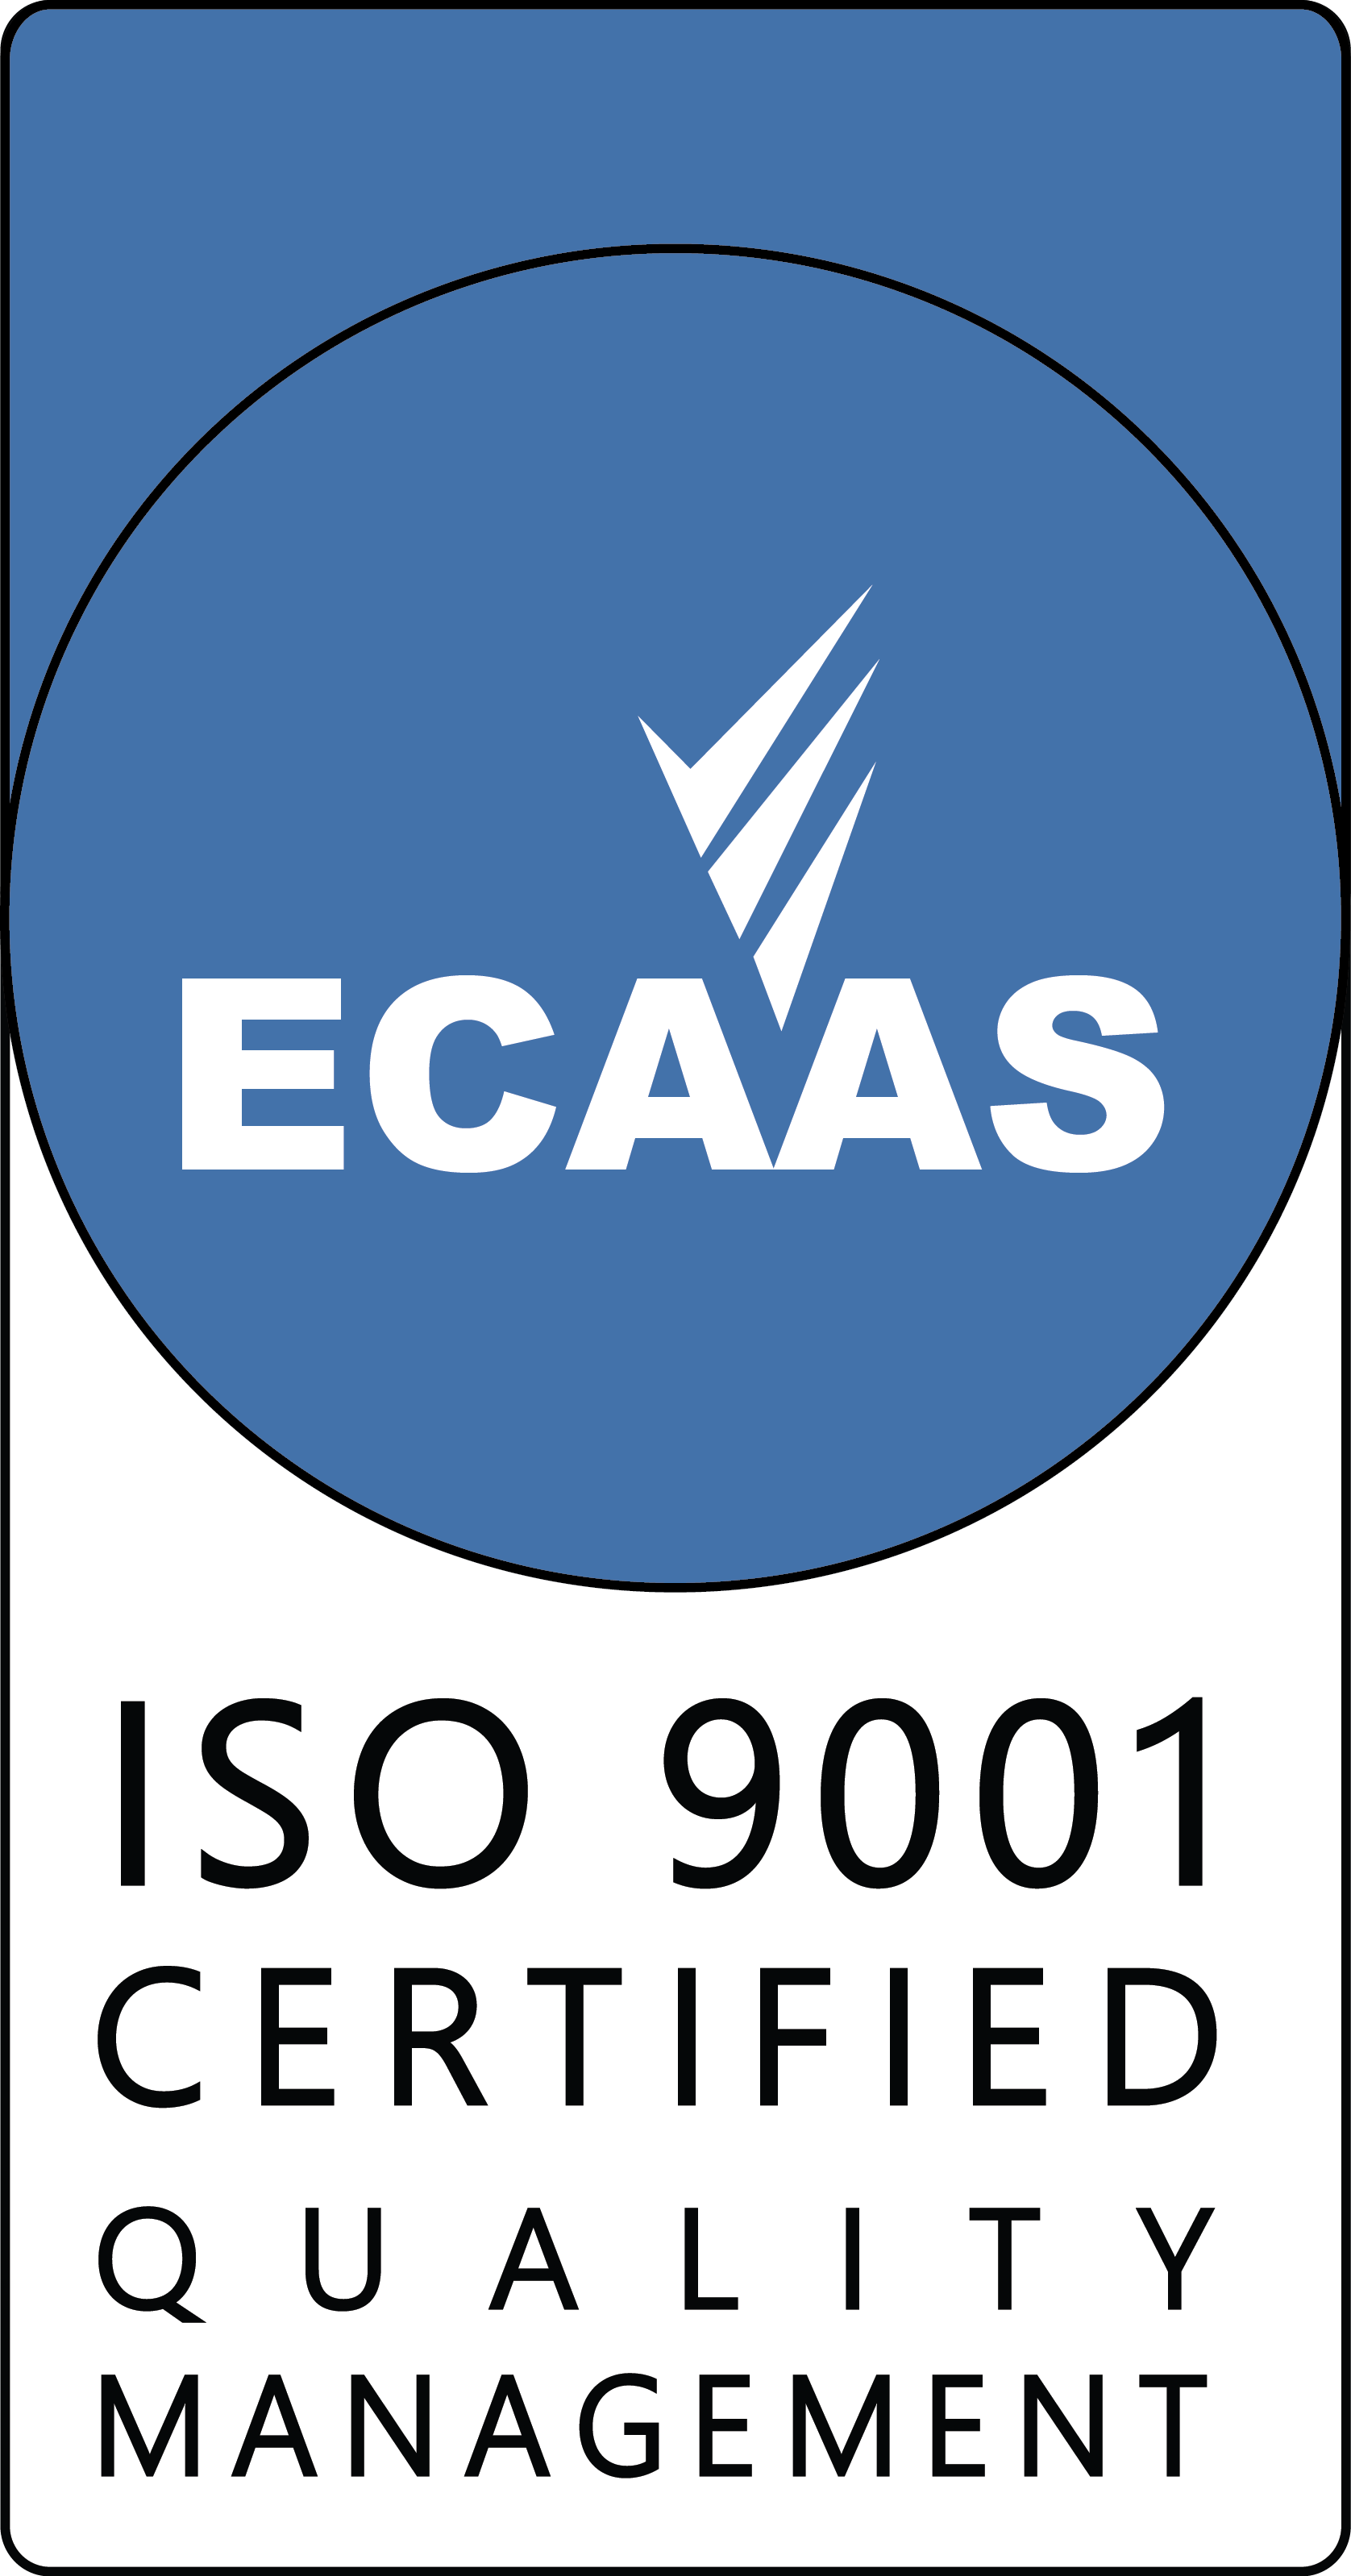 ECAAS Certification Mark - 9001 v1.1 300ppi